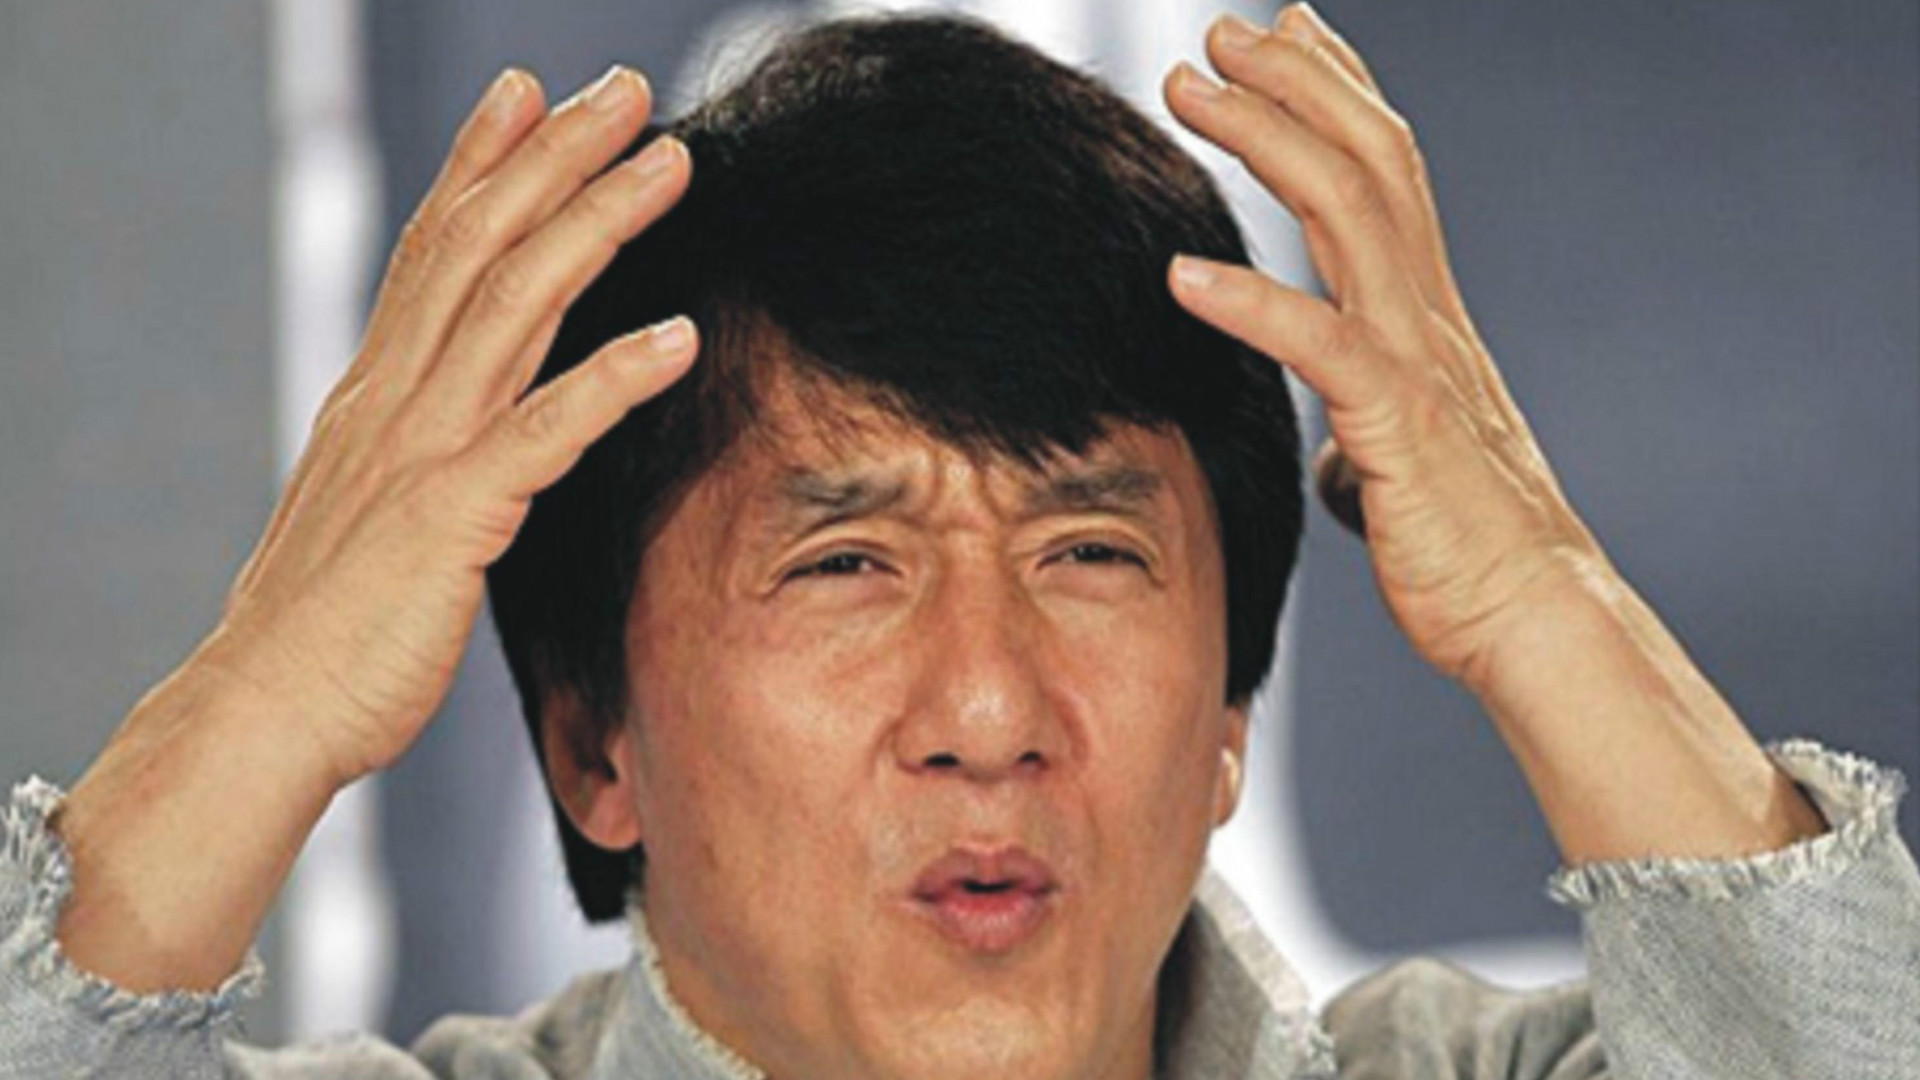 Jackie Chan looking very confused.